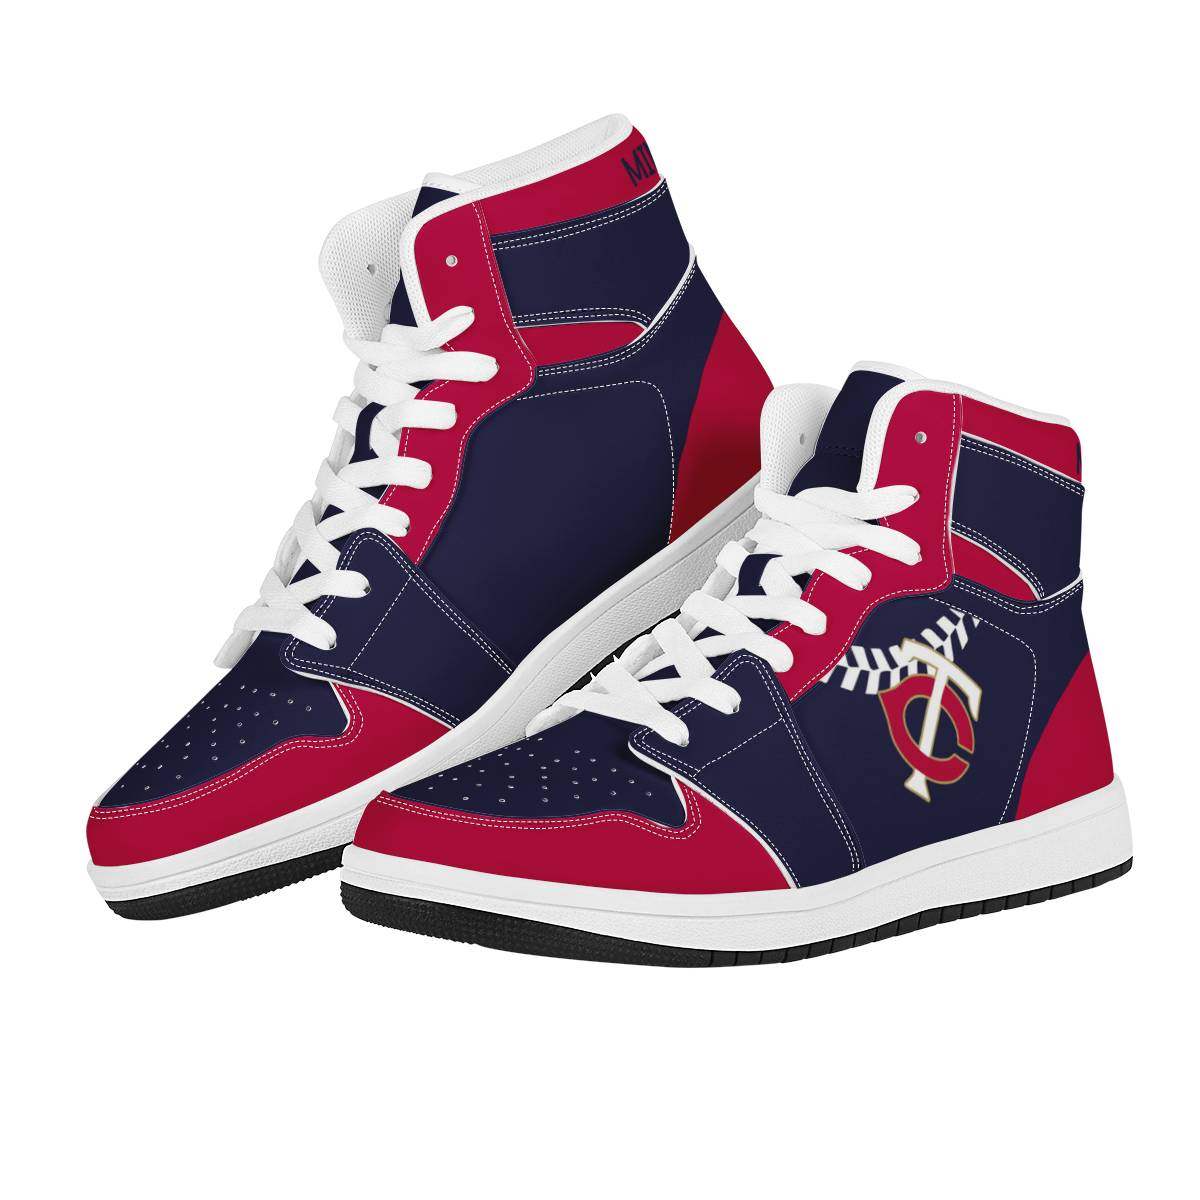 Men's Minnesota Twins High Top Leather AJ1 Sneakers 002